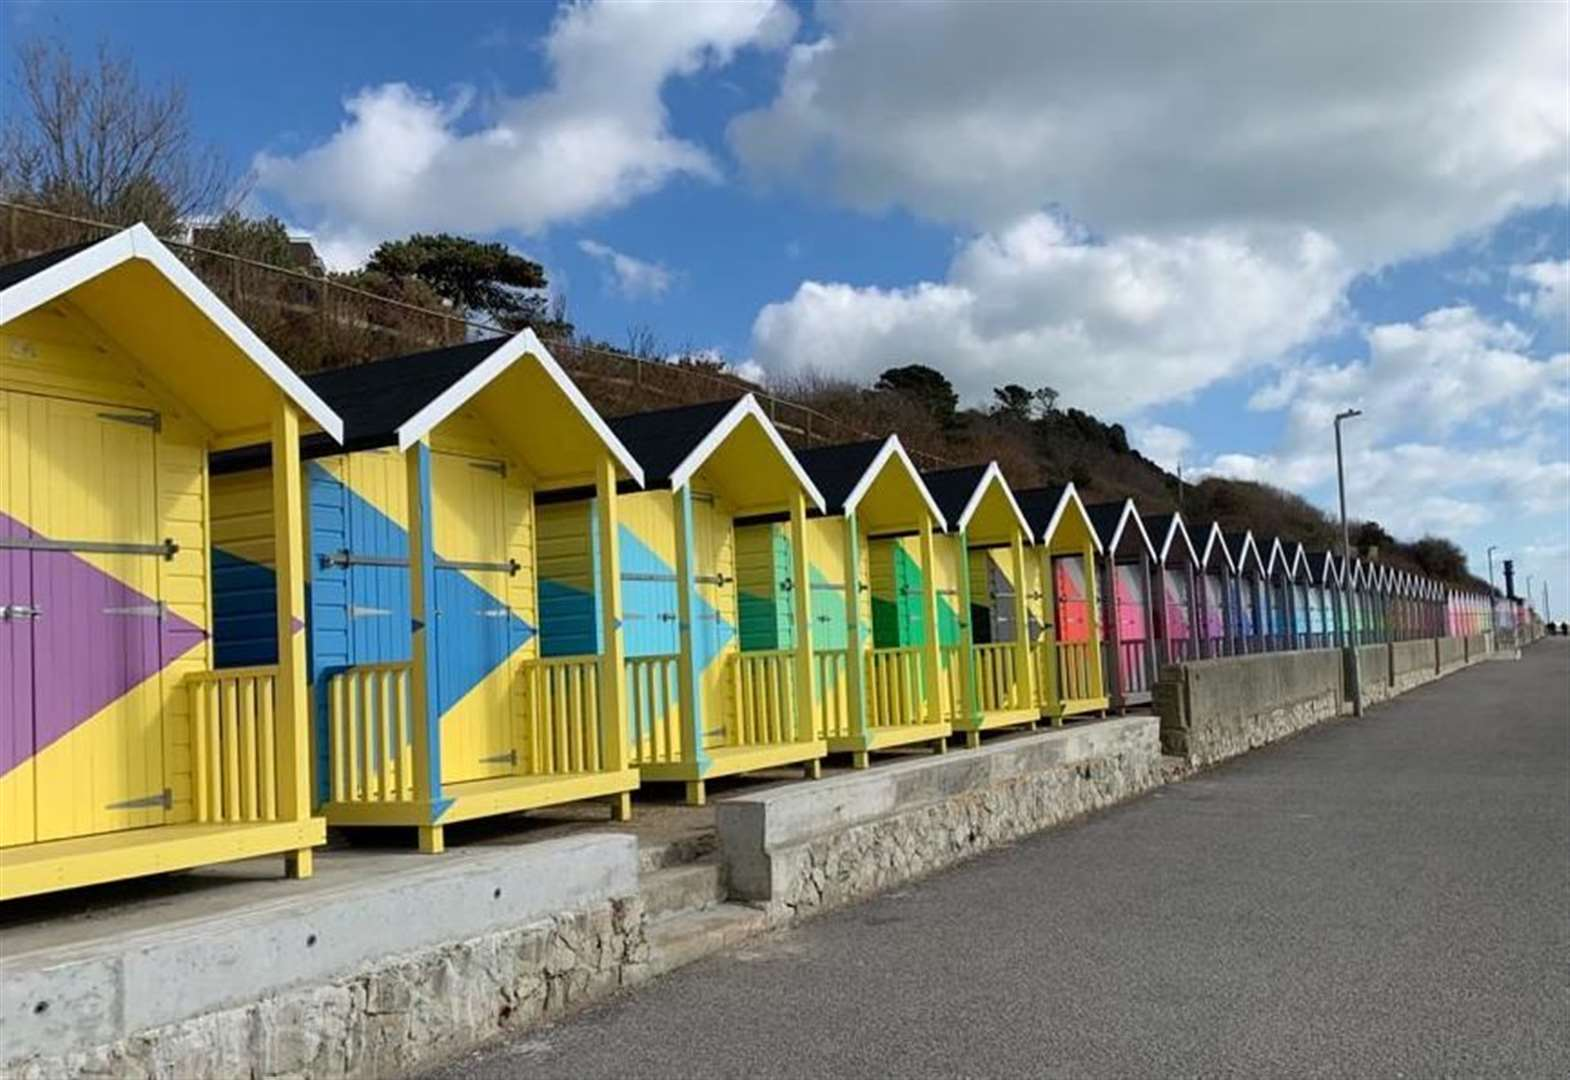 New beach huts will feature in upcoming triennial